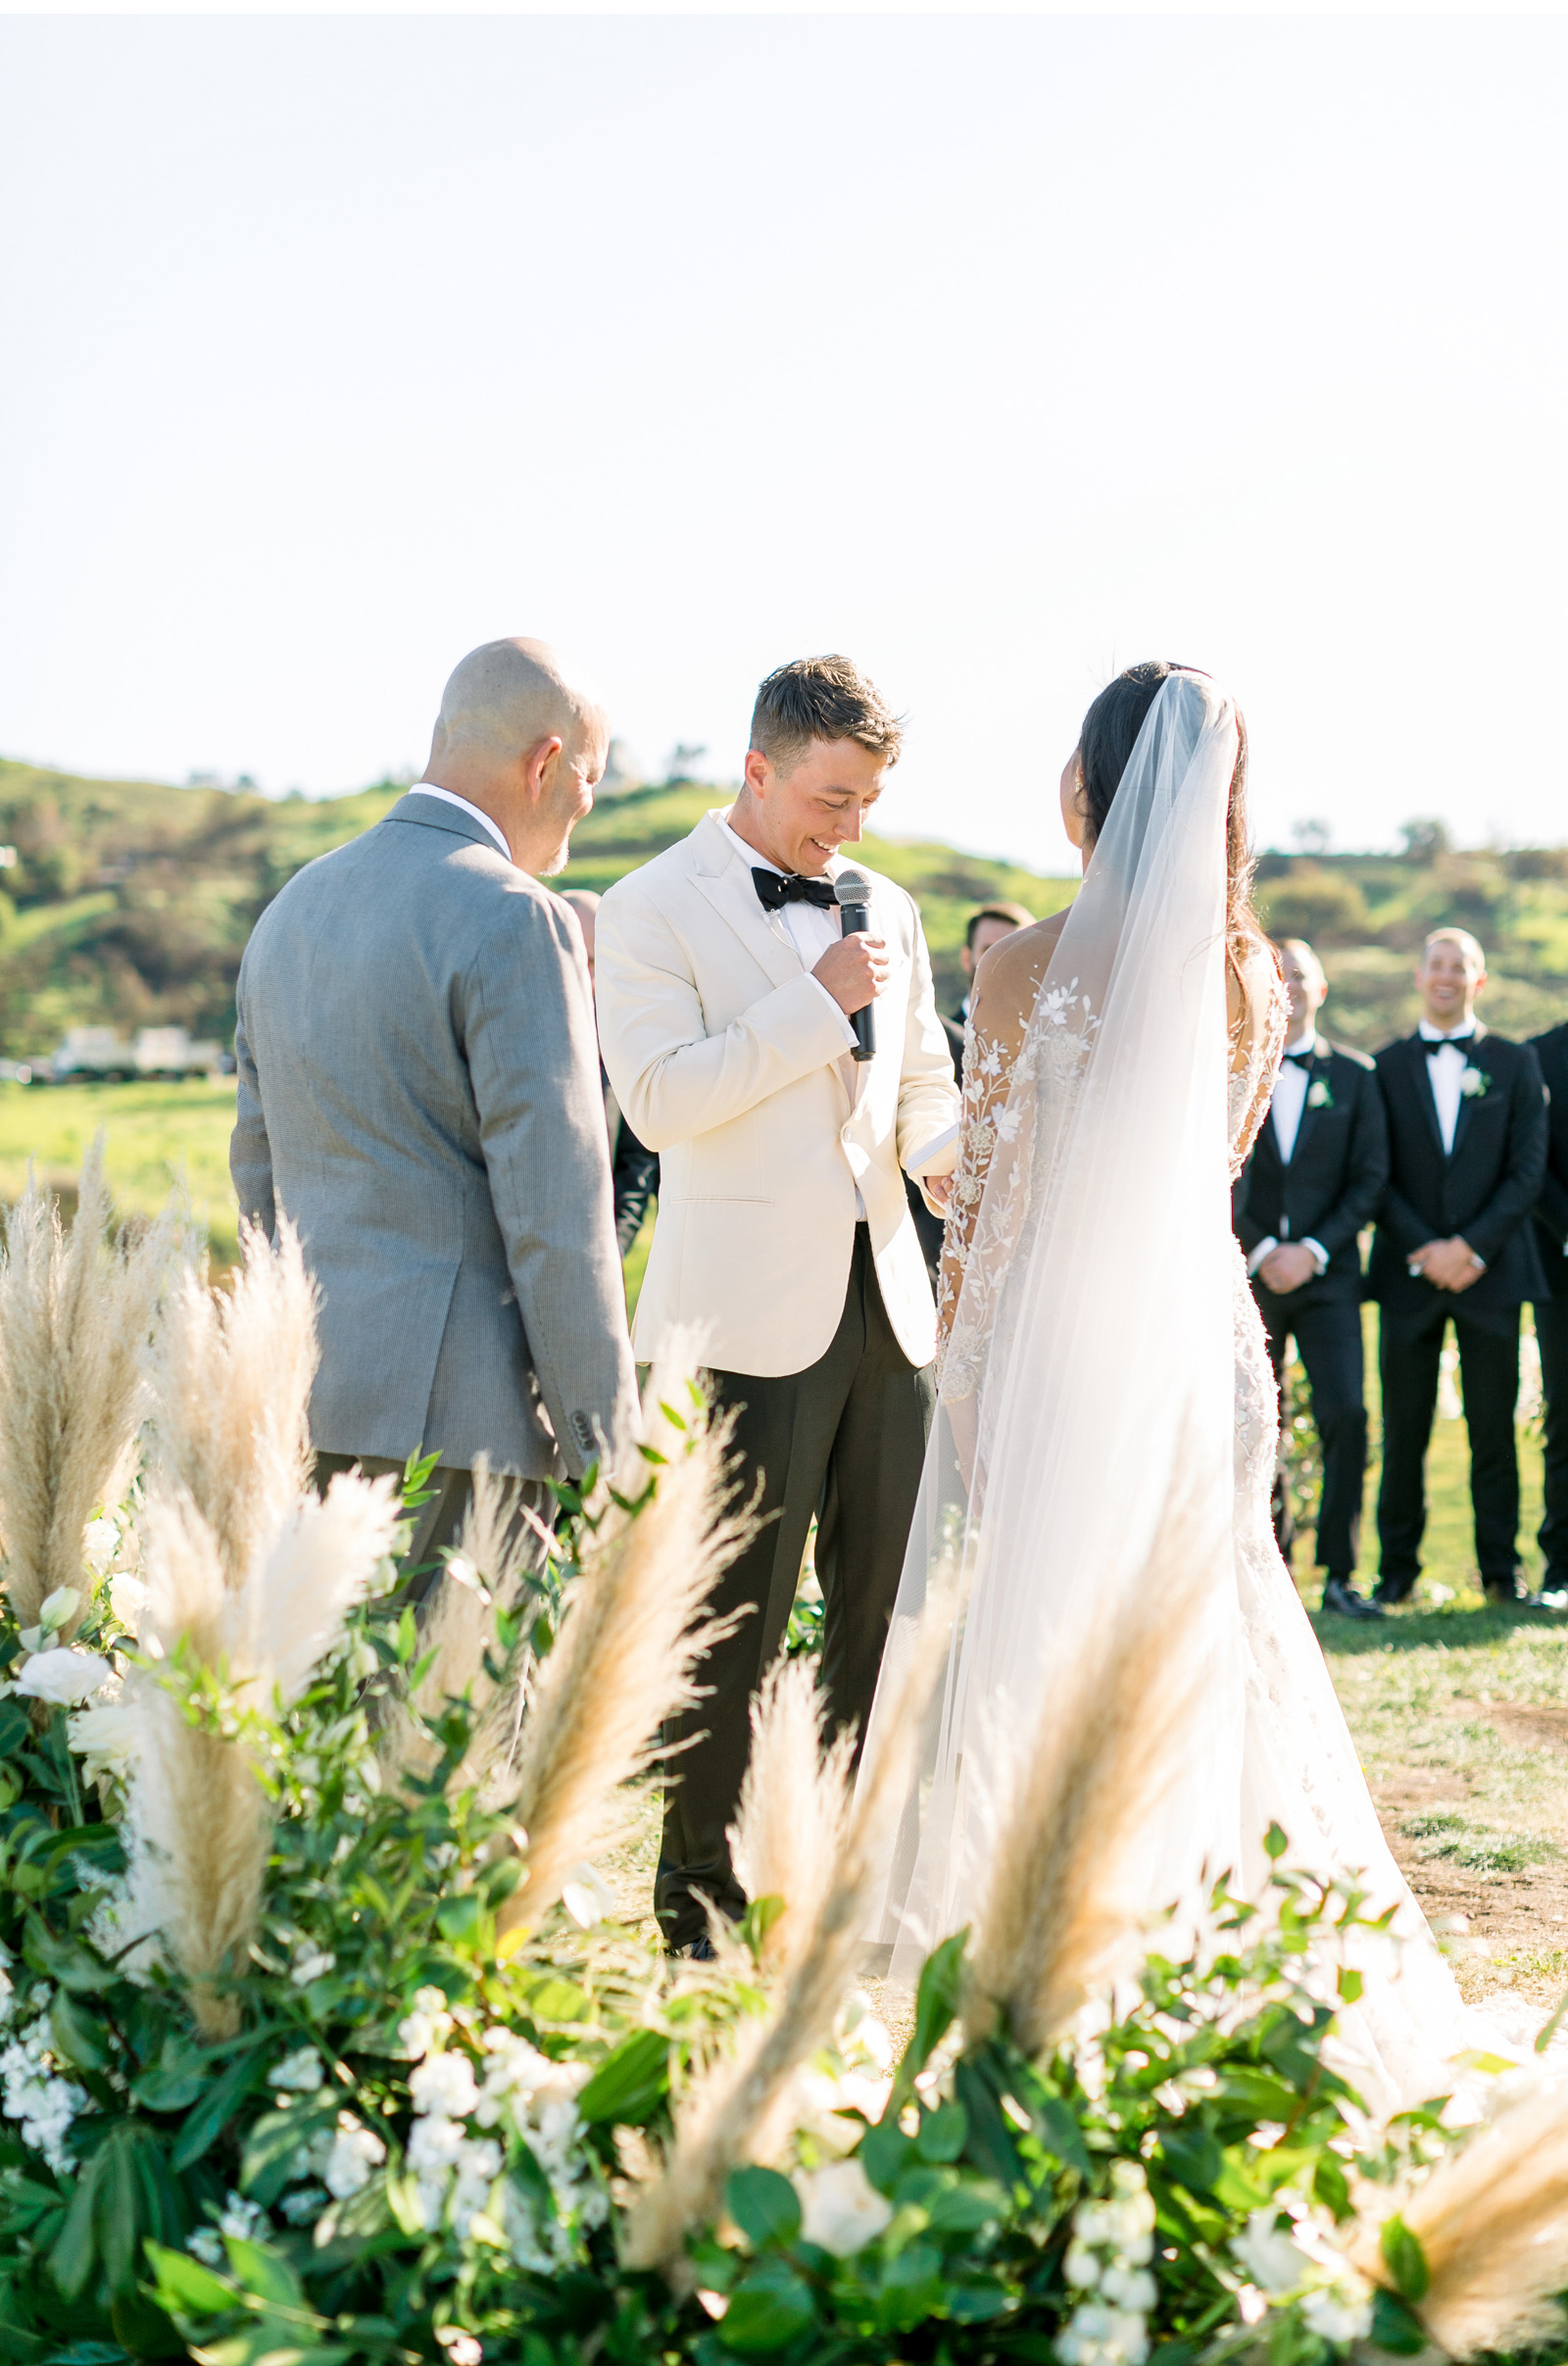 Southern-California-Wedding-Photographer-West-Coast-Weddings-Style-Me-Pretty-Malibu-Wedding-Photographer-Natalie-Schutt-Photography_04.jpg